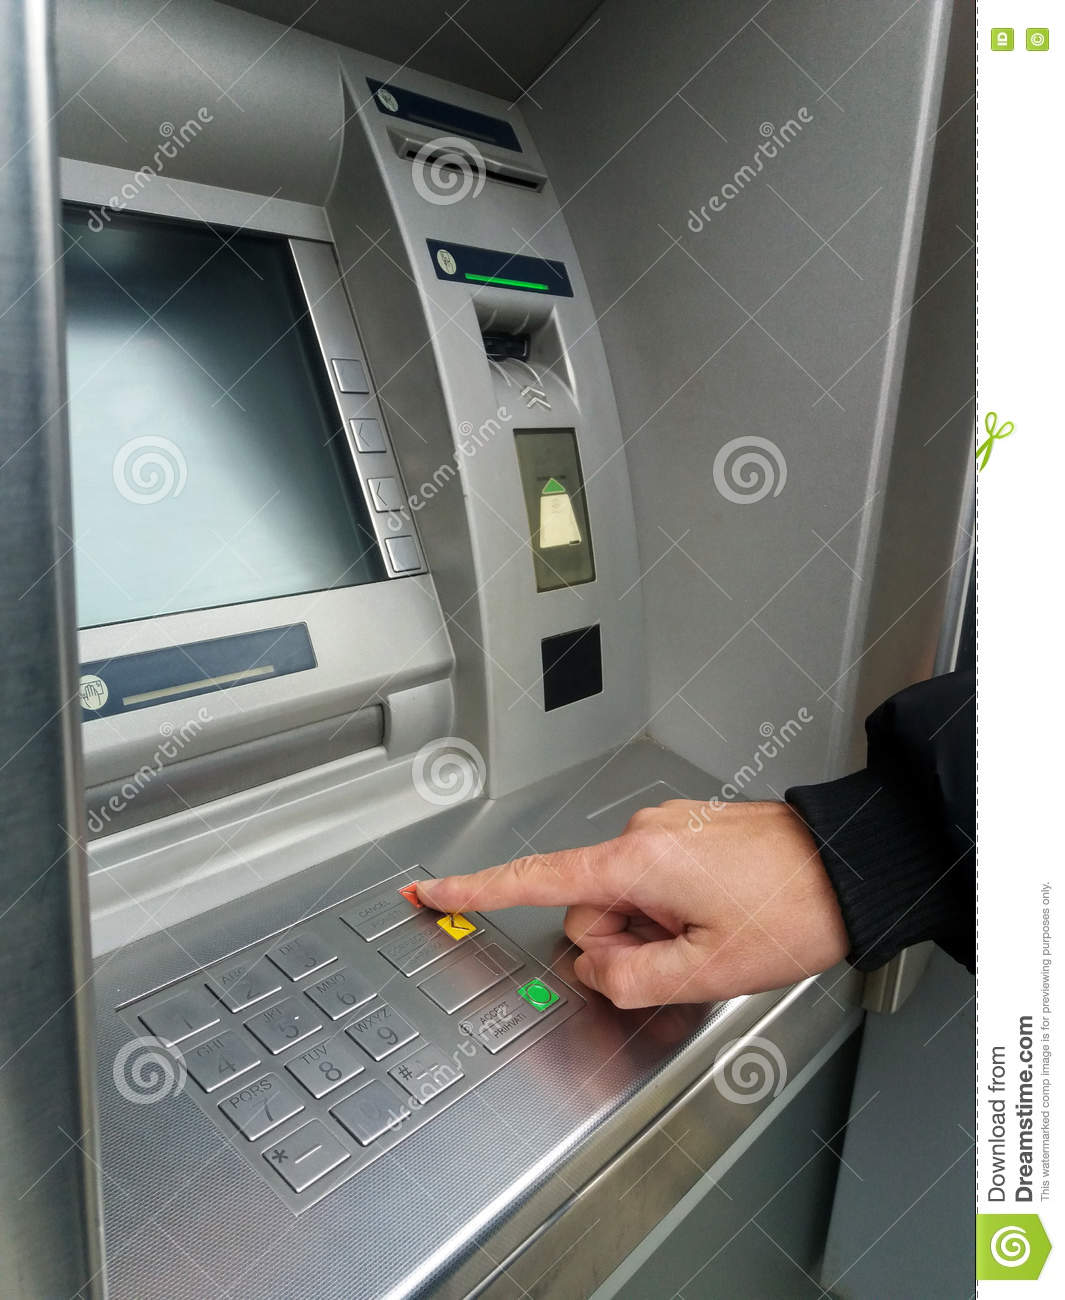 Man`s using the ATM machine with cash cards. Close-up of hand entering PIN/pass code on ATM/bank machine keypad.